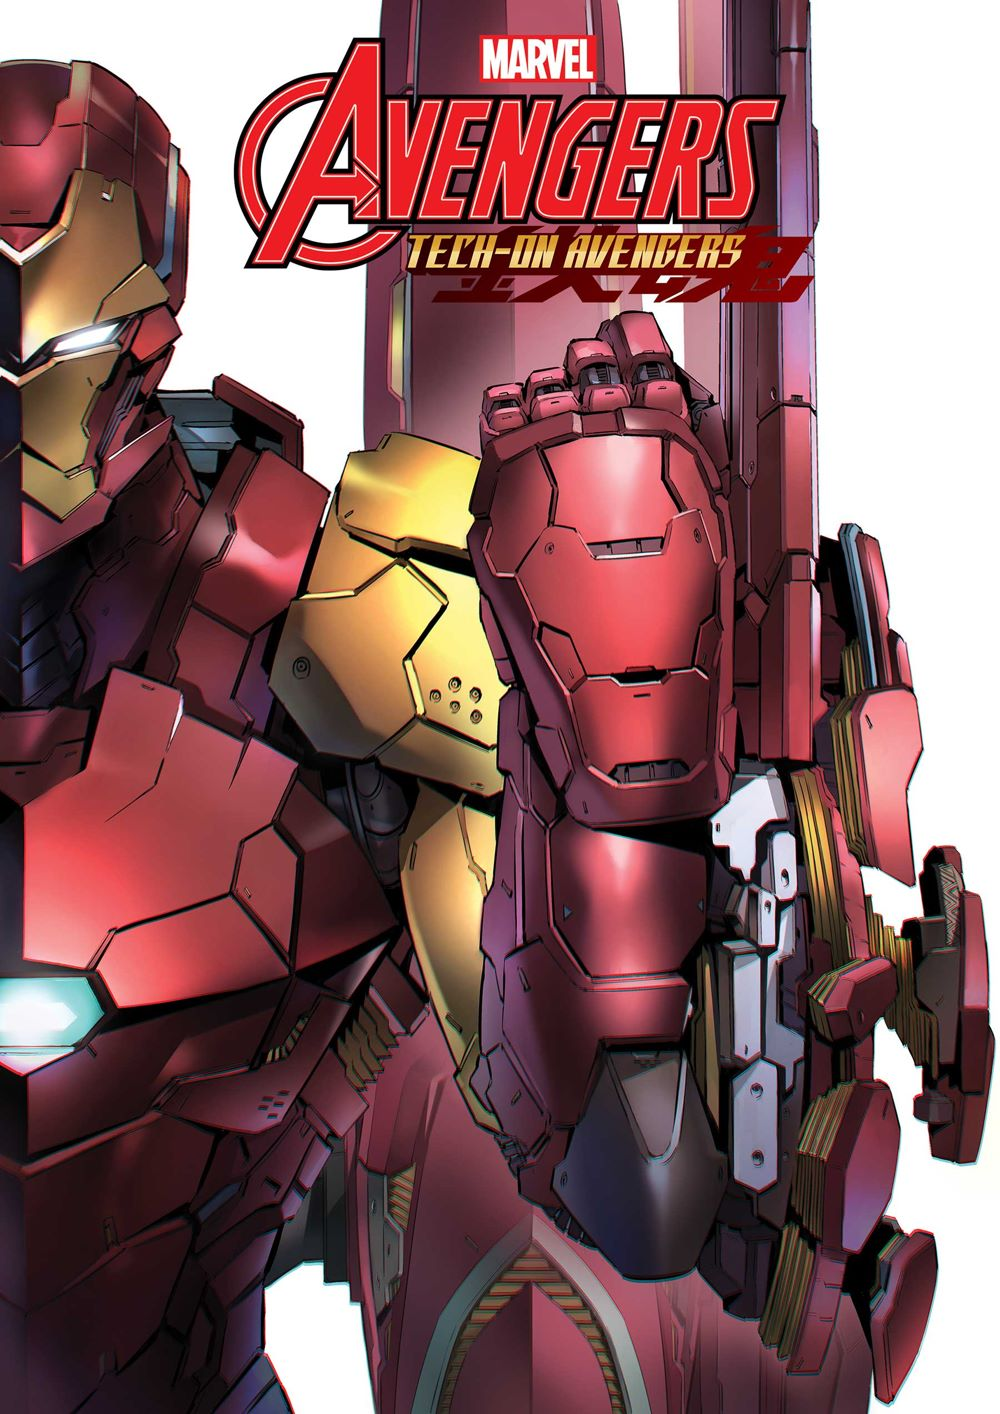 AVENTECHON2021001_cov-1 Marvel and Bandai Spirits upgrade heroes in TECH-ON AVENGERS